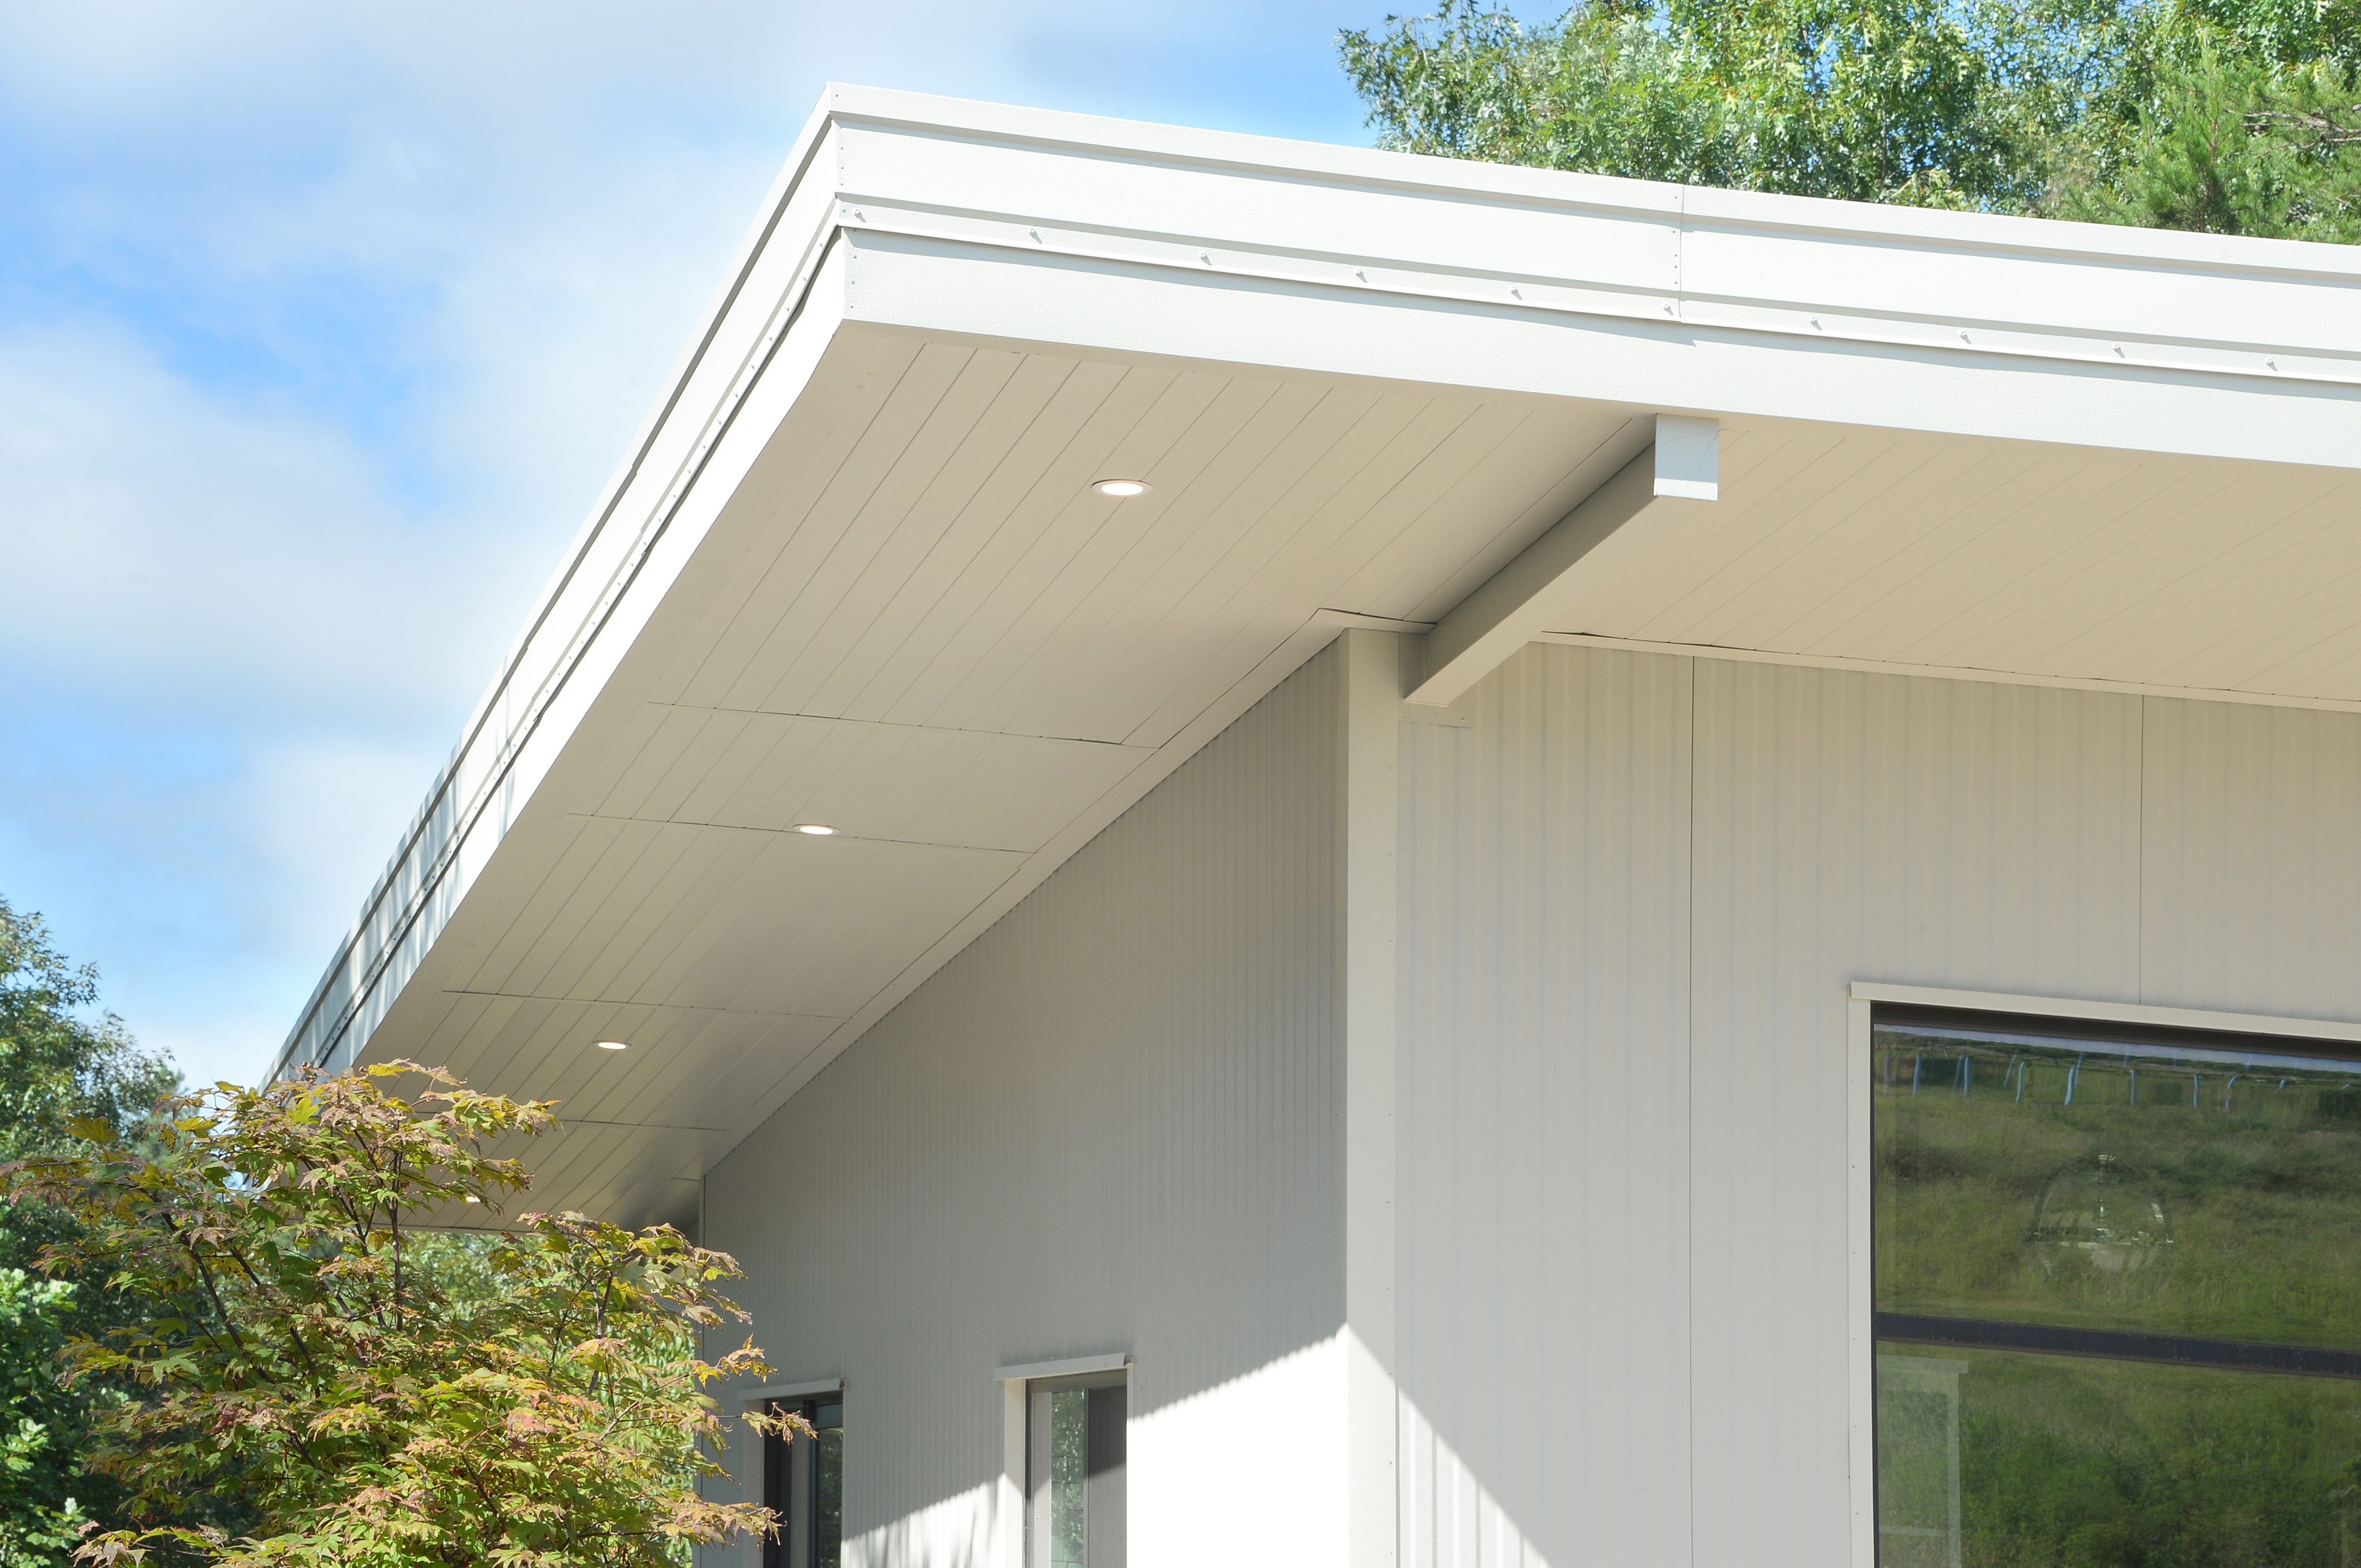 Ls 36 Insulated Roof And Wall Panel Metl Span